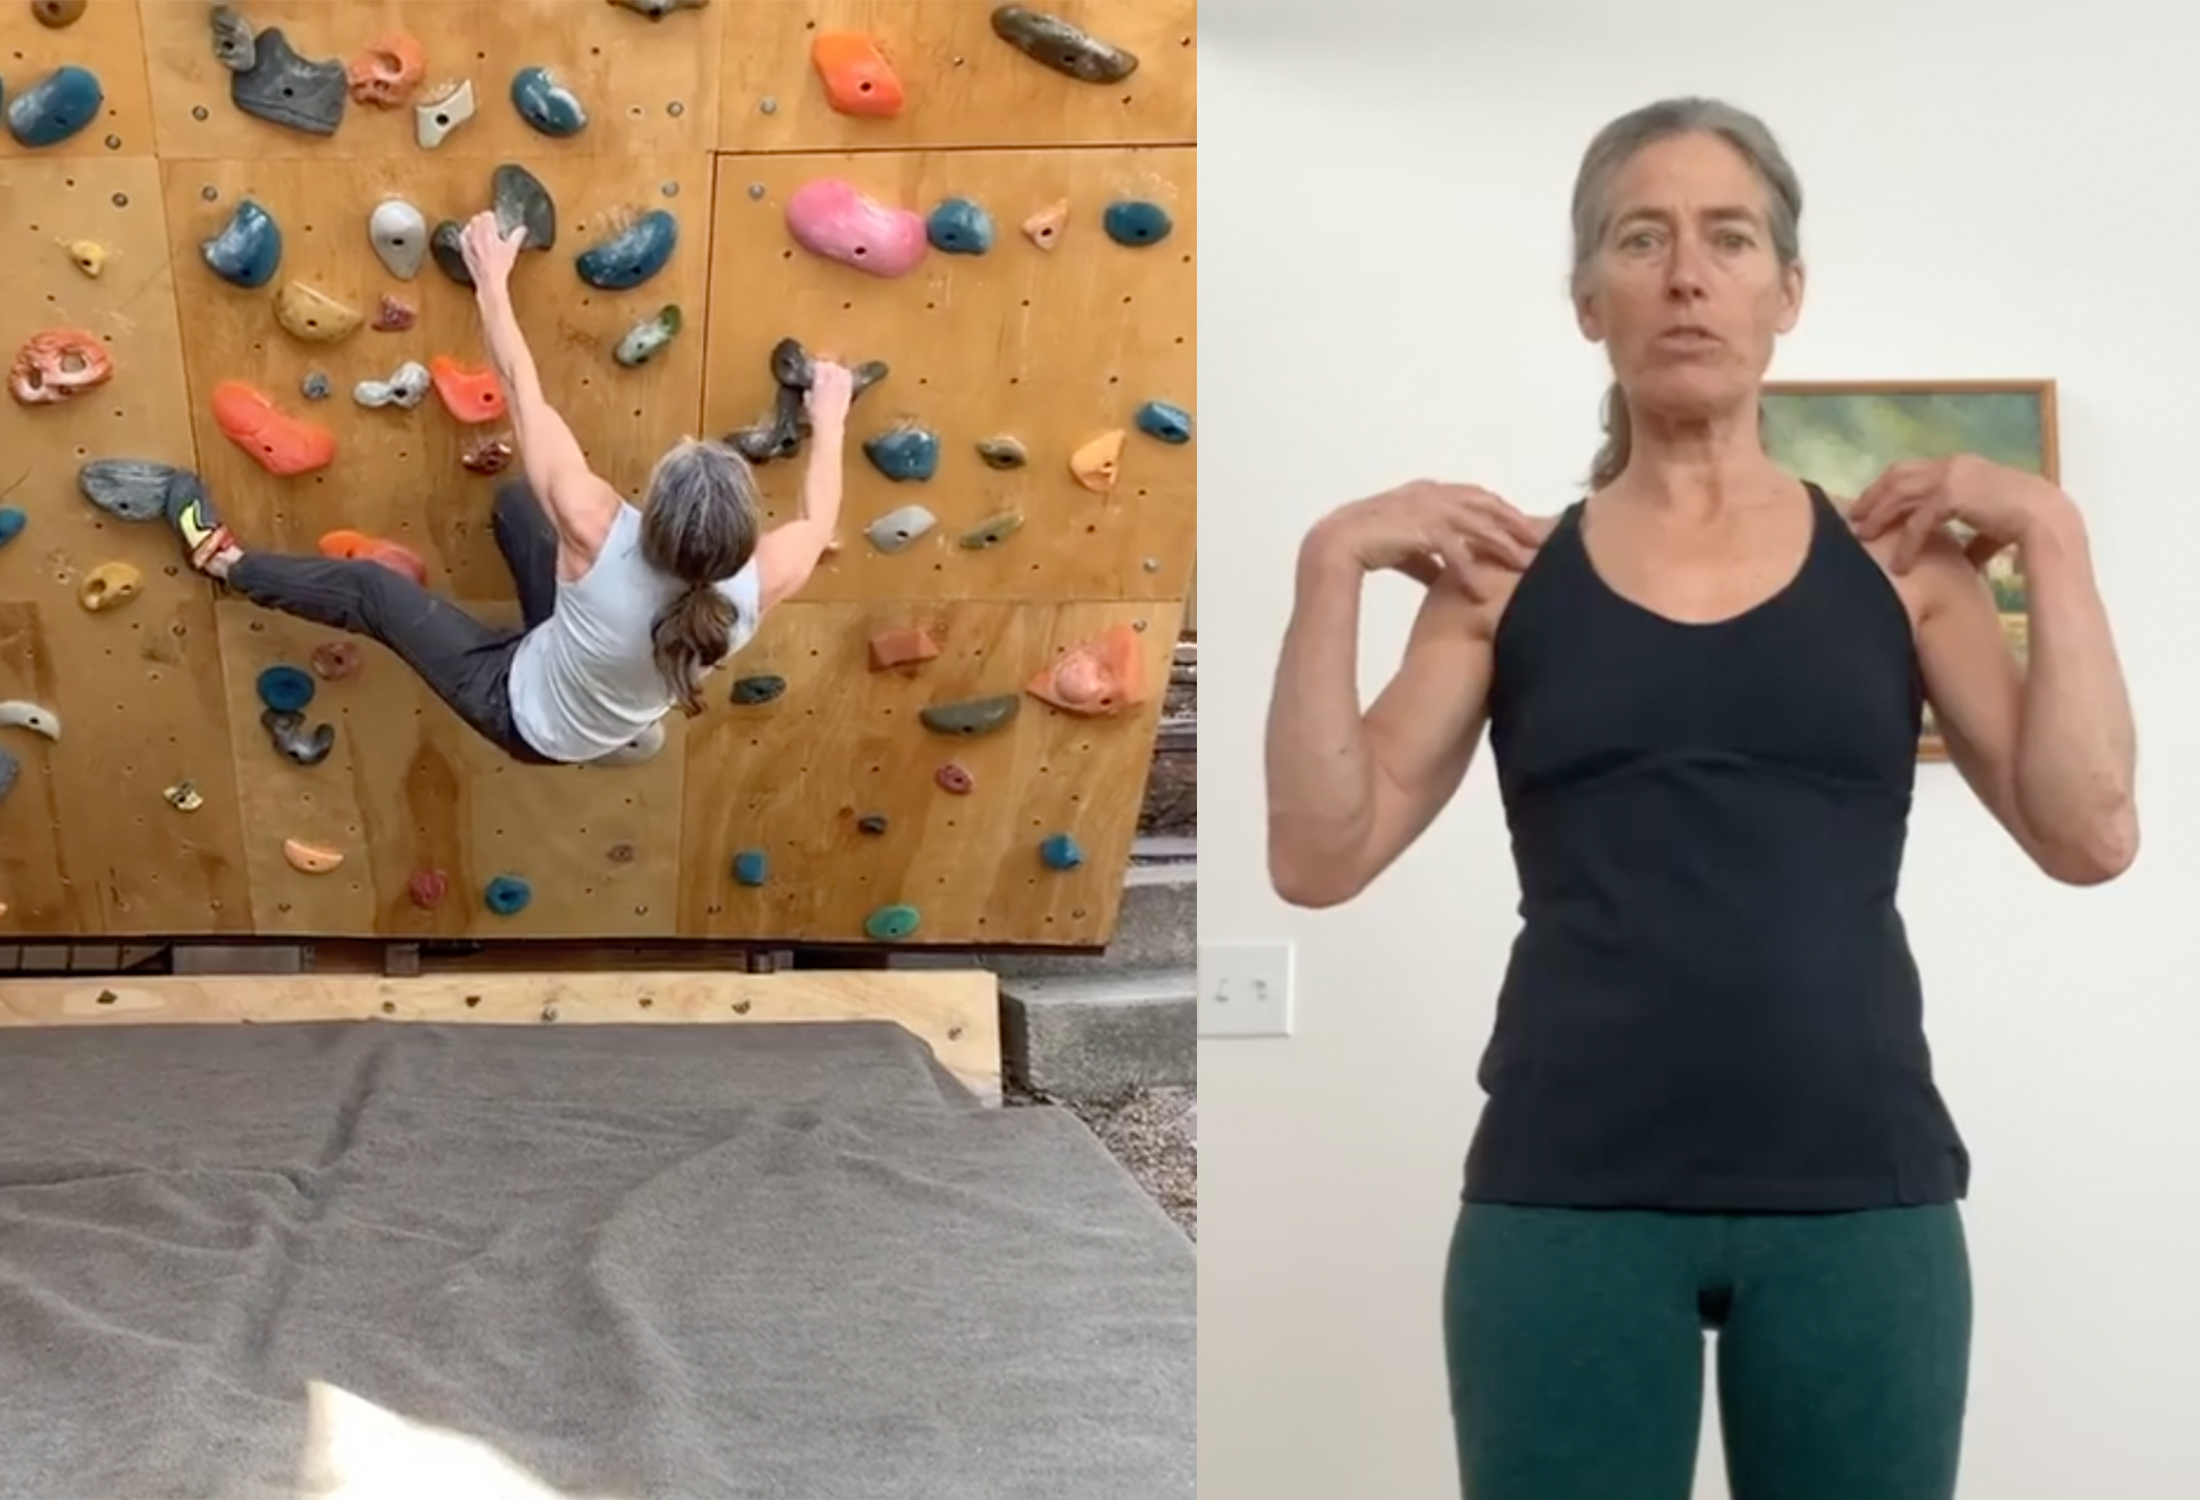 lynn hill climbing on wall and demonstrating shoulder exercise on right